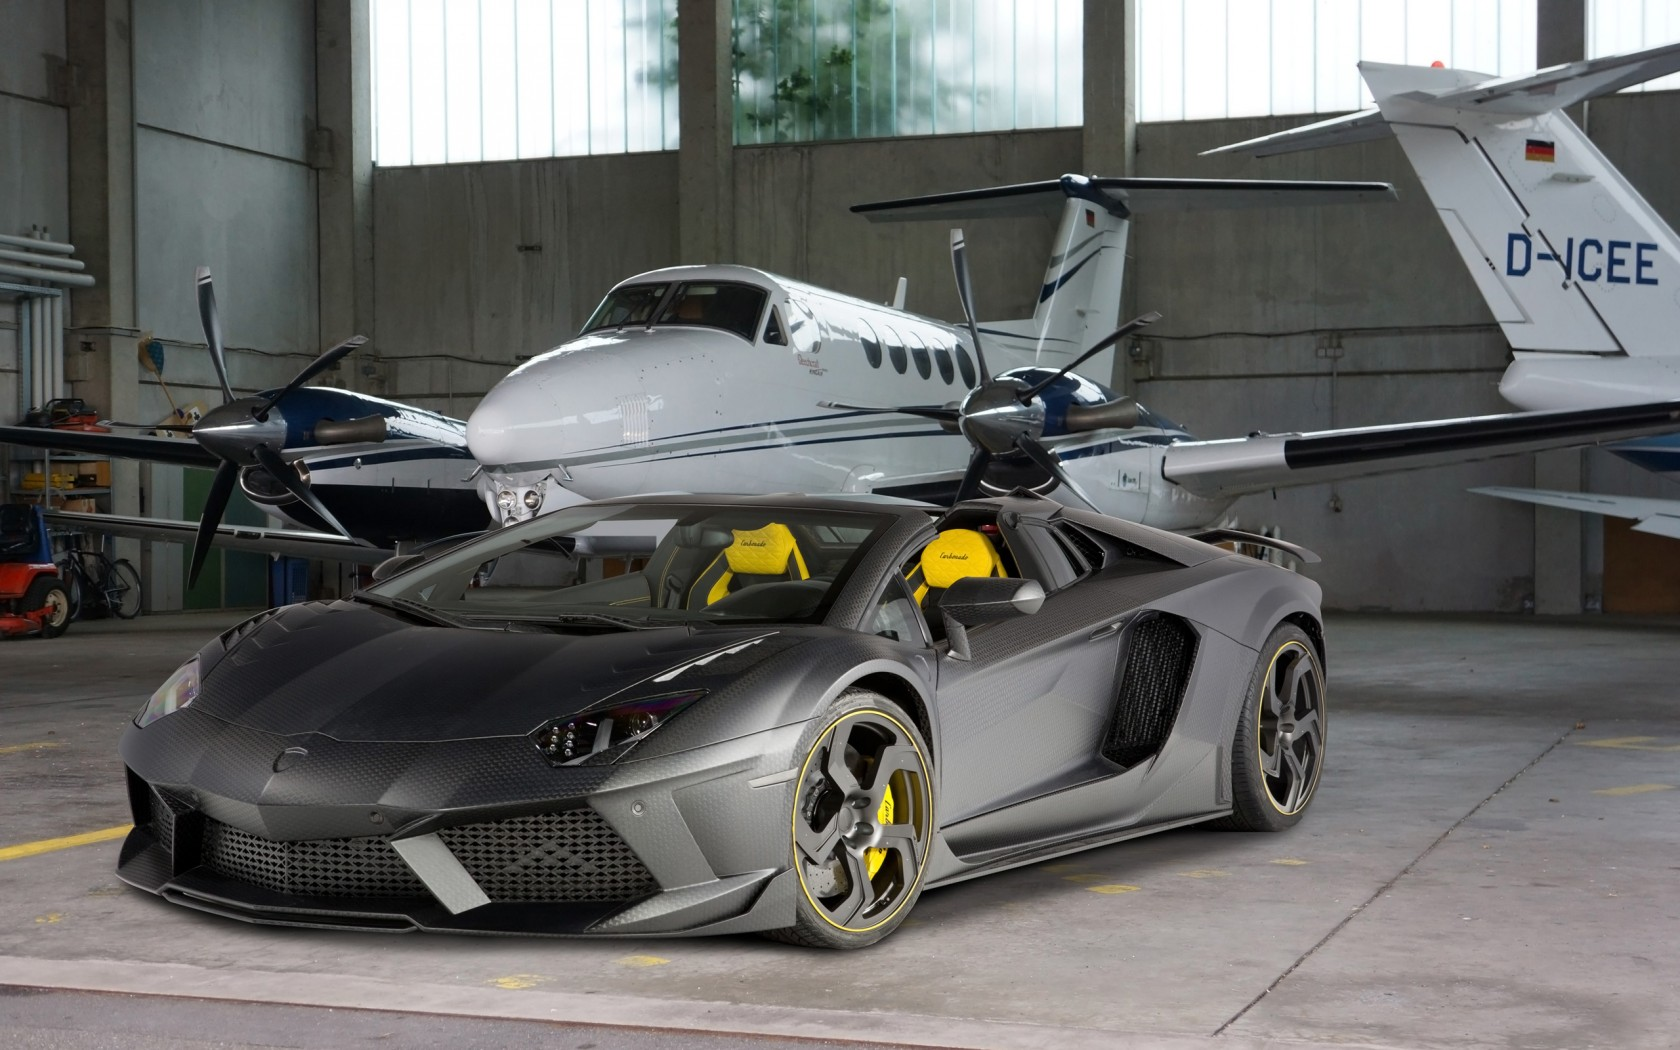 2014 mansory lamborghini aventador carbonado roadster wallpaper hd car wallpapers id 4900